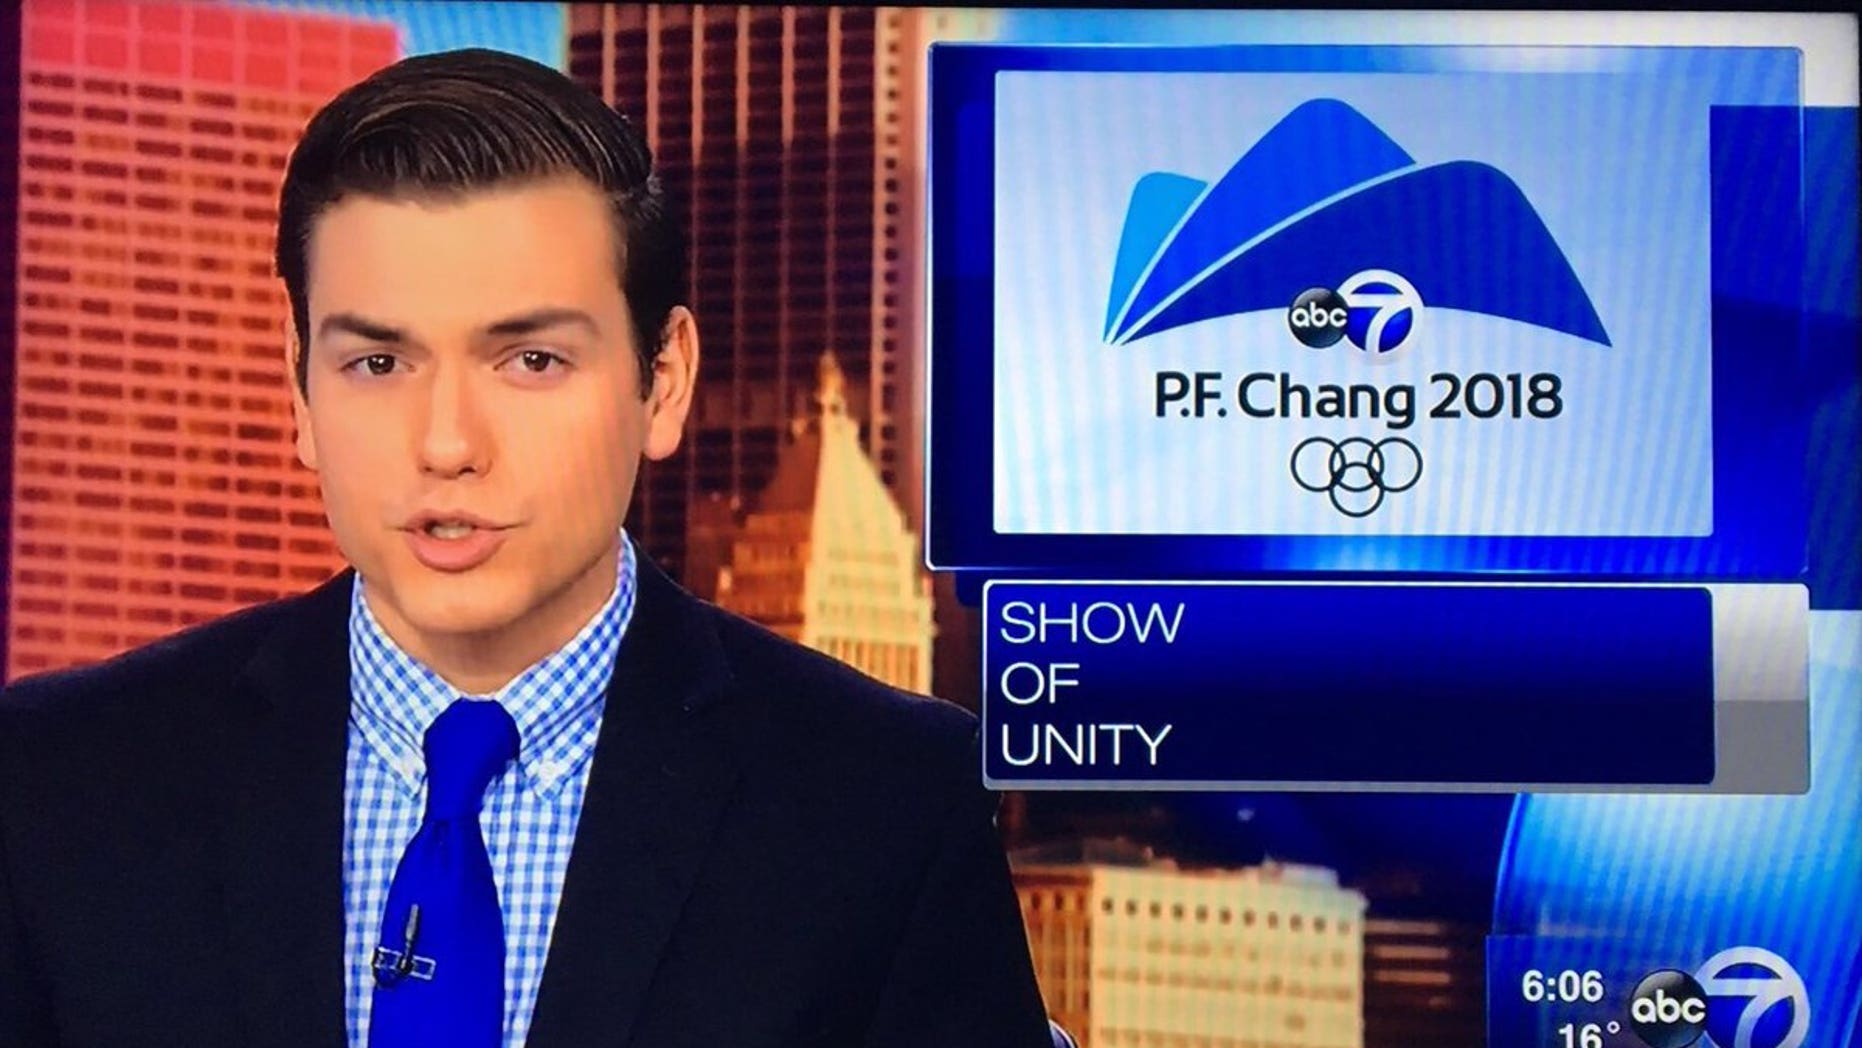 An ABC Affiliate In Chicago Aired A Graphic That Mixed Up Pyeongchang With PF Changs